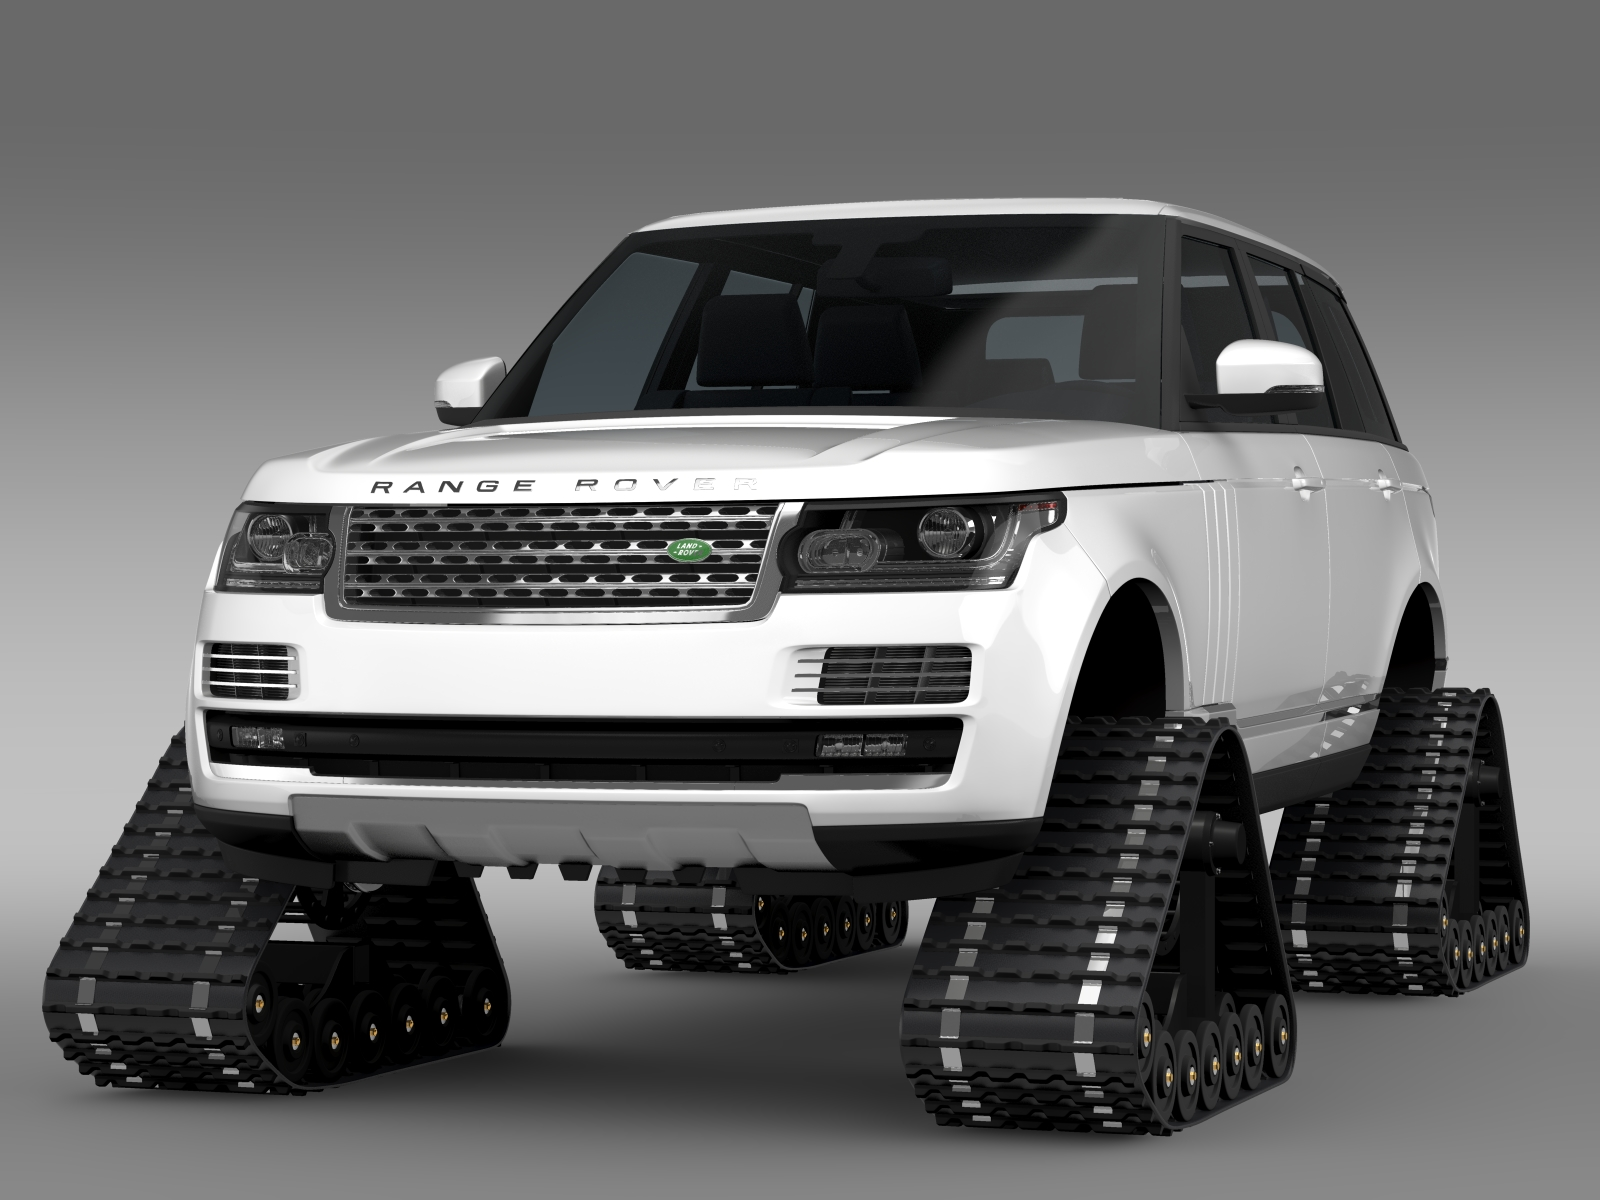 range rover supercharged l405 crawler 2016 3d model buy range rover supercharged l405 crawler. Black Bedroom Furniture Sets. Home Design Ideas